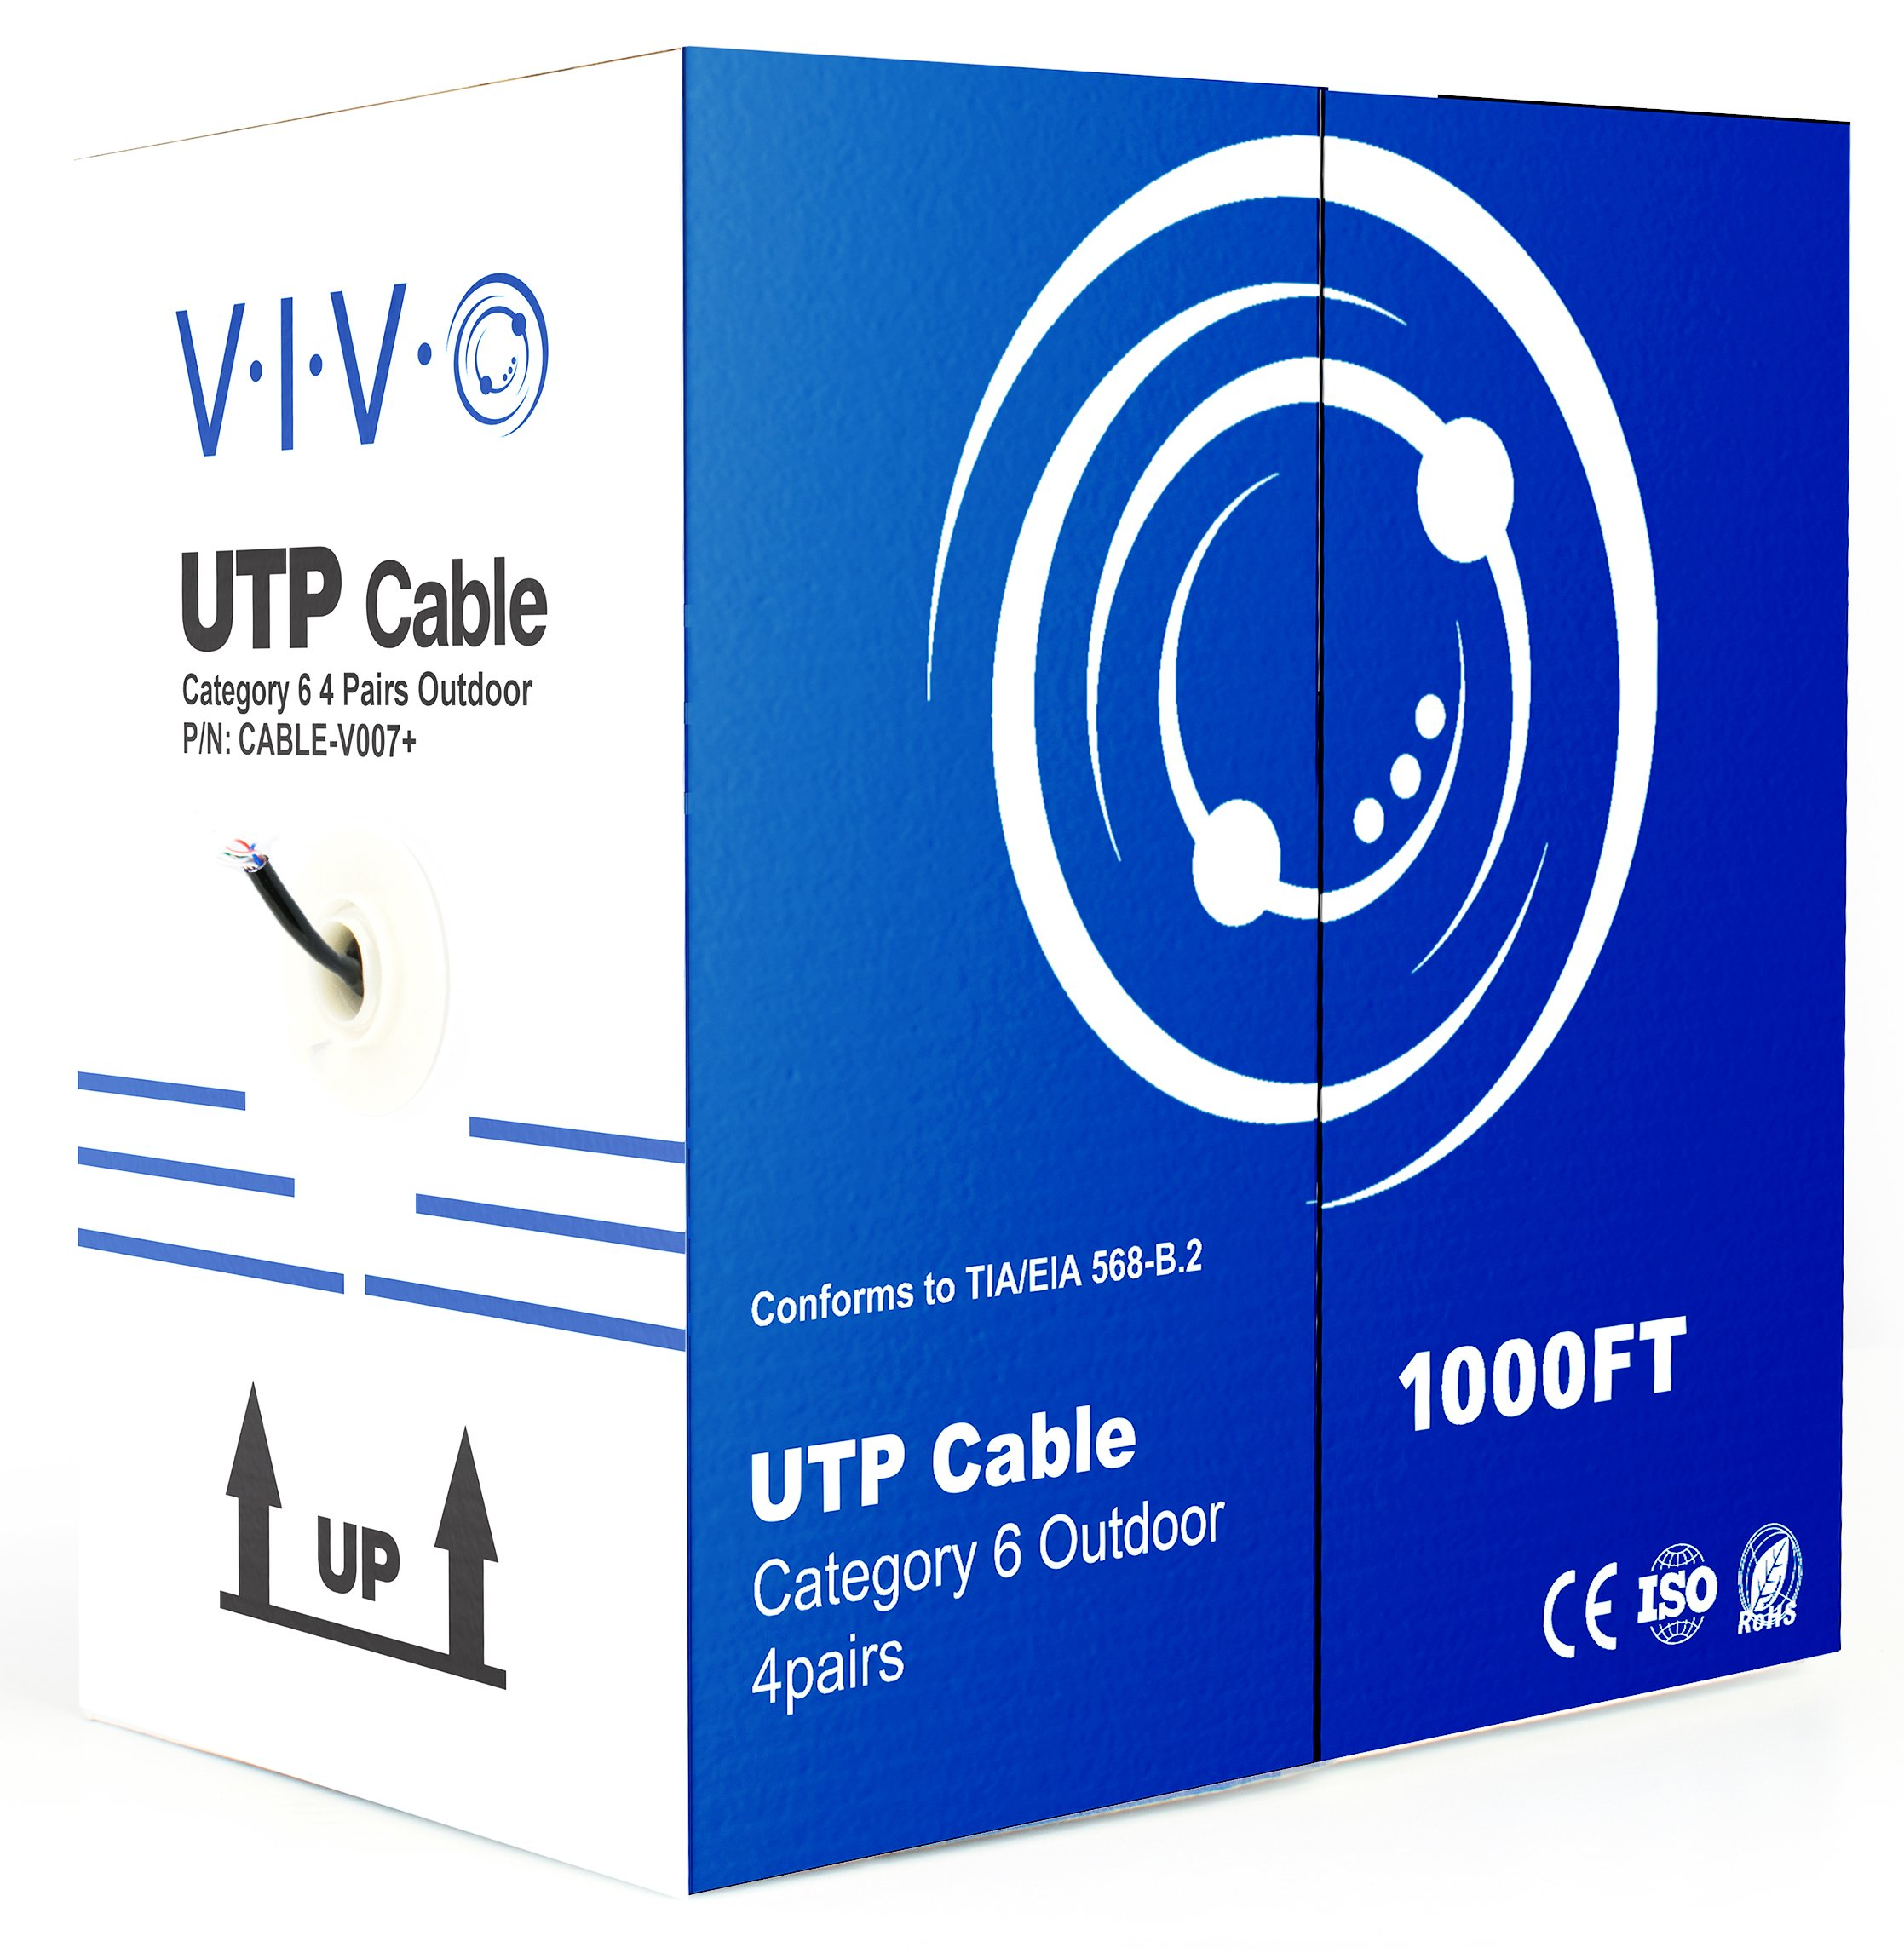 VIVO Black 1,000ft Bulk Cat6, CCA Ethernet Cable, 23 AWG, UTP Pull Box   Cat-6 Wire, Waterproof, Outdoor, Direct Burial (CABLE-V007) by VIVO